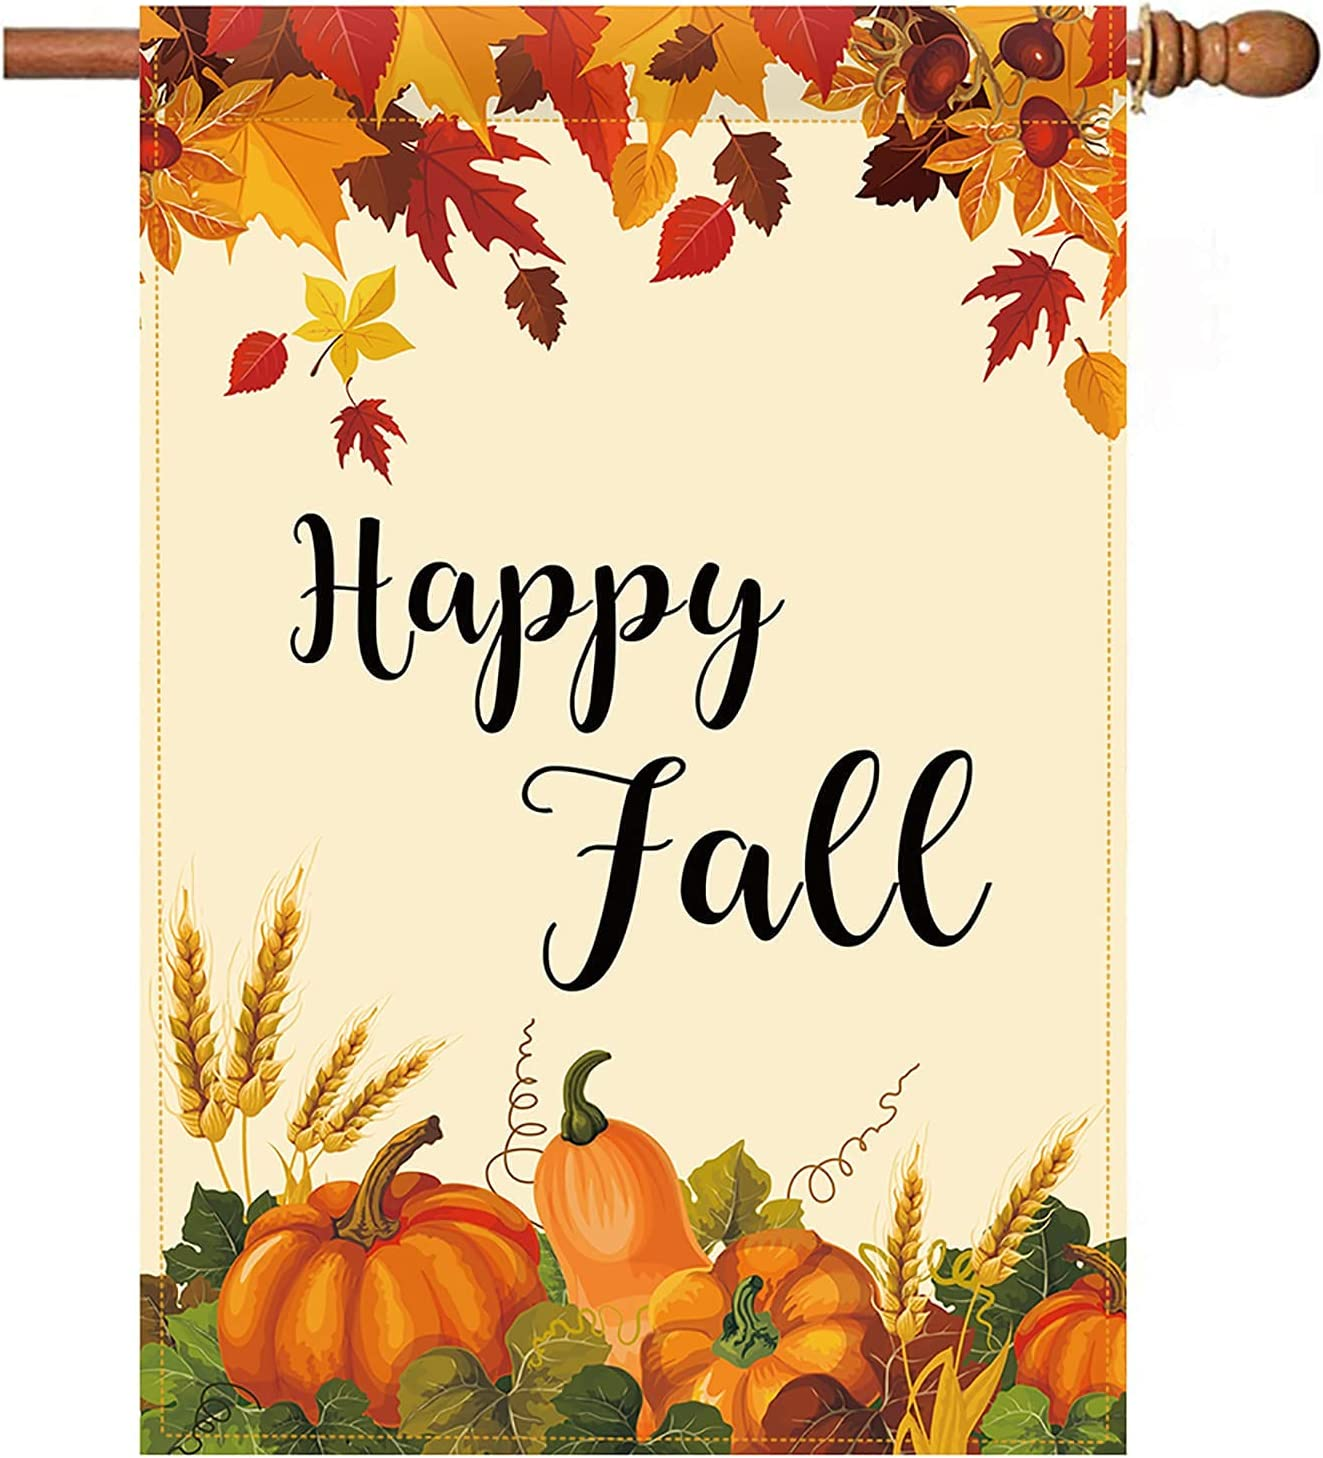 chokeberry Fall Garden Super beauty product restock quality top Flag Clearance SALE! Limited time! for Outside Maple - Leaf Hello